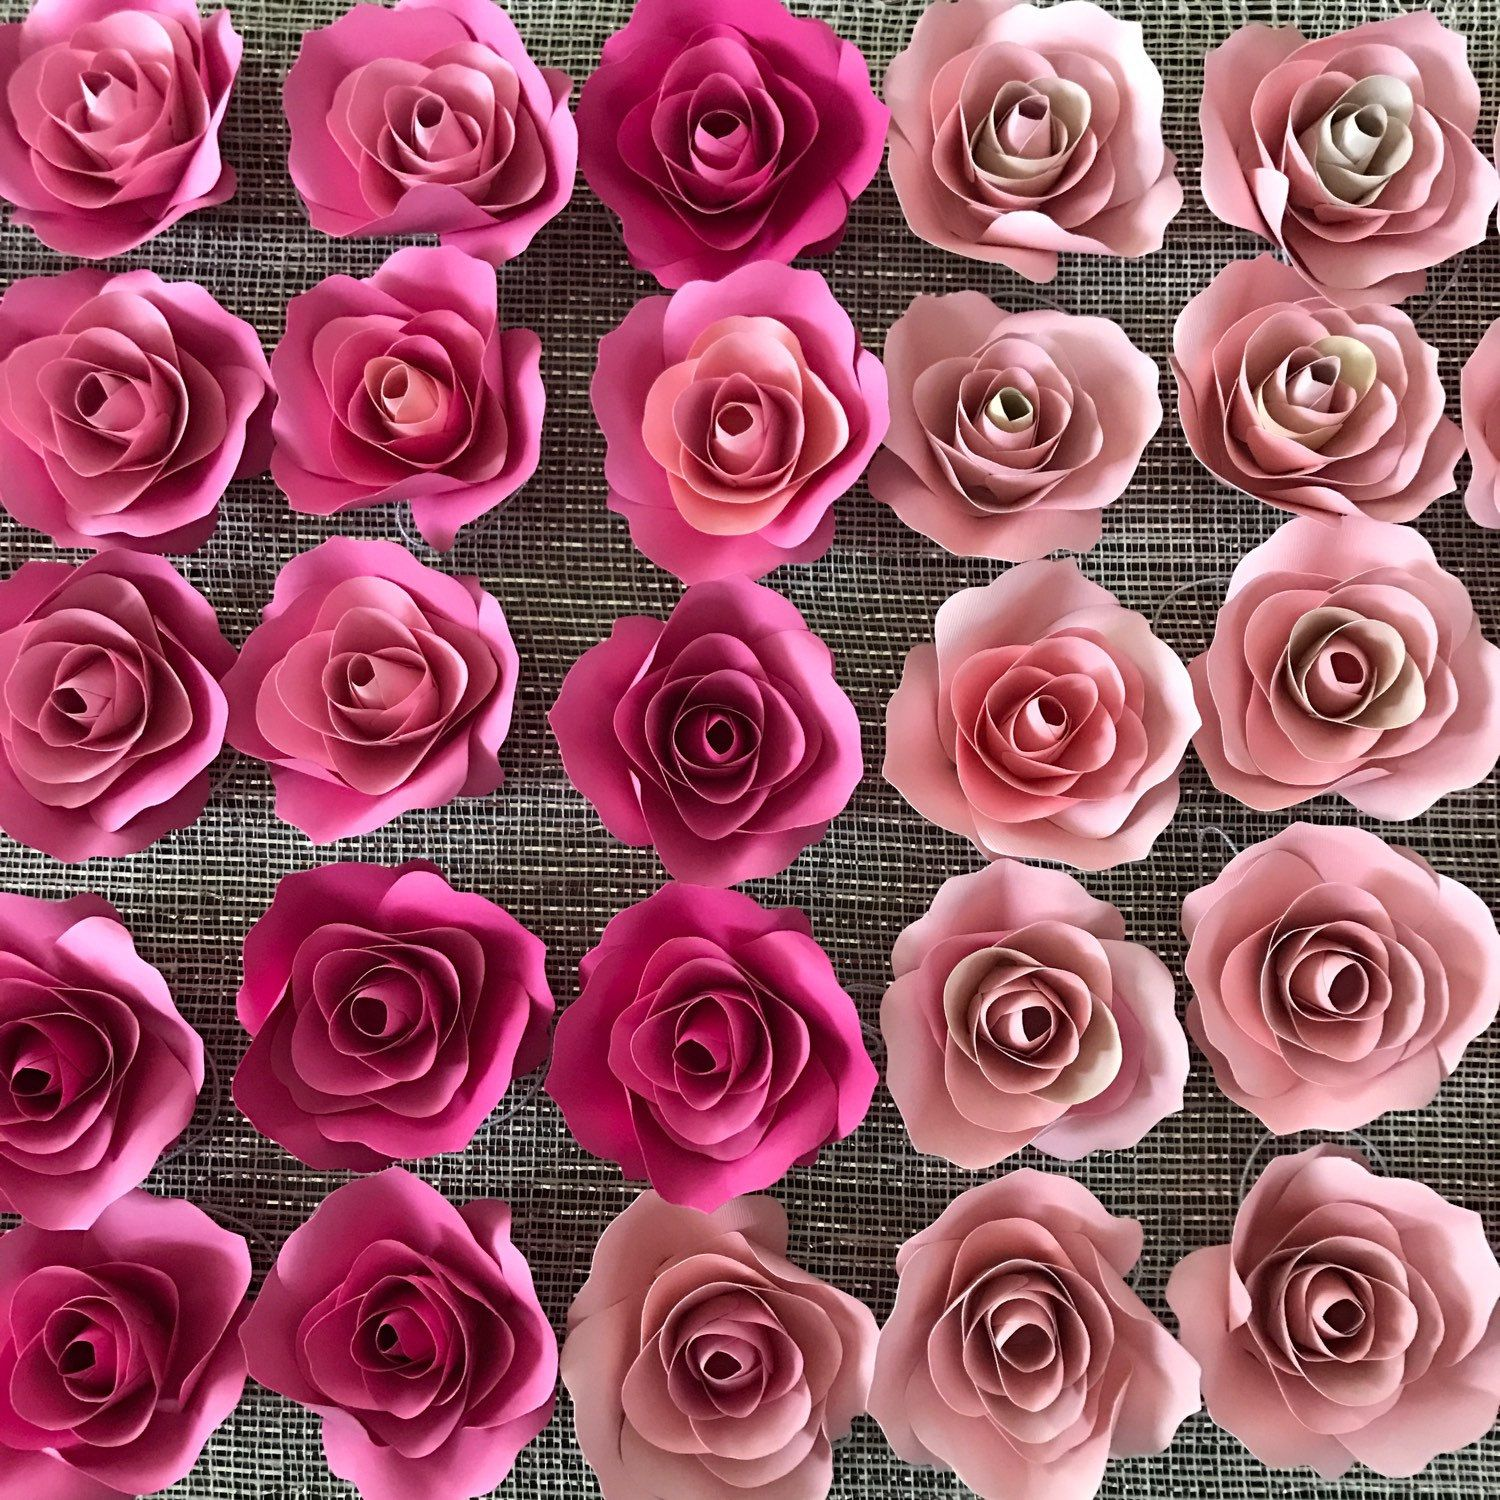 Handmade Paper Flowers Paper Roses Floral Backdrop Baby Shower